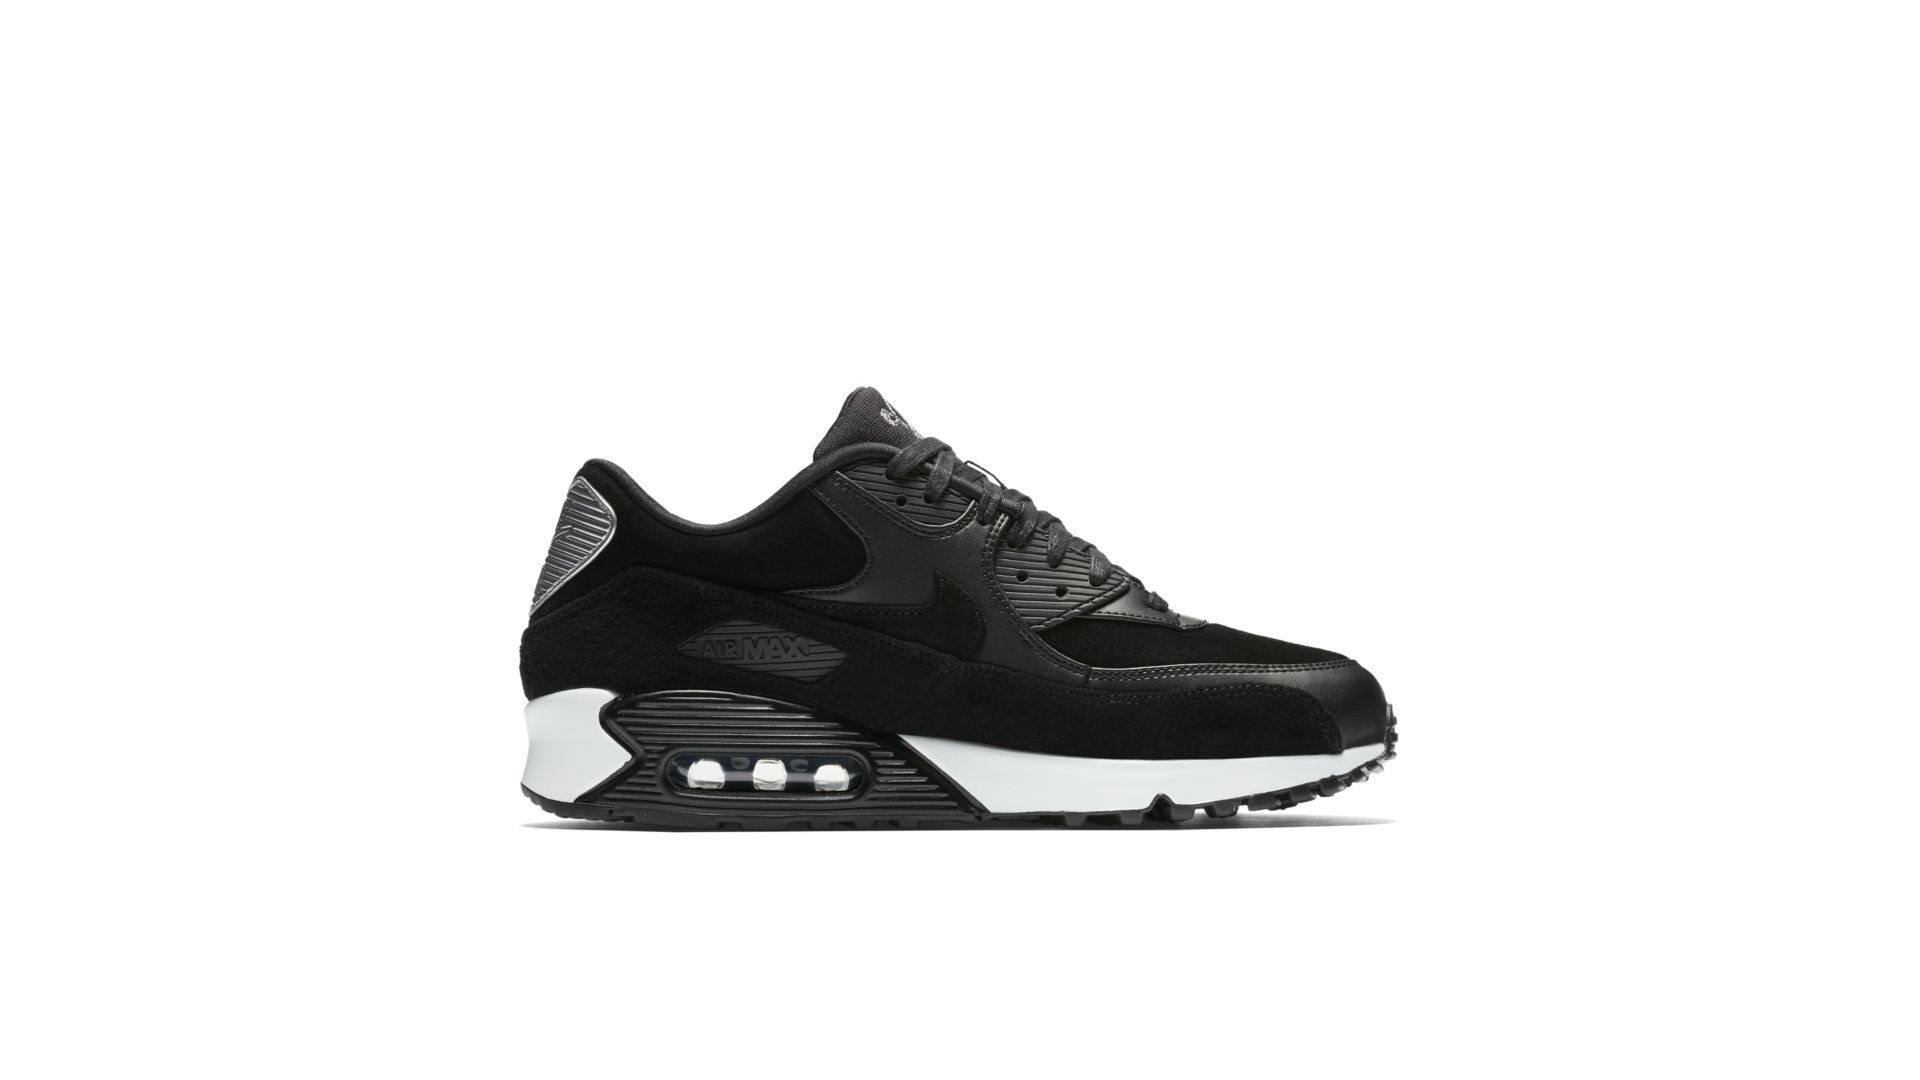 Nike Air Max 90 Rebel Skulls (700155-009)